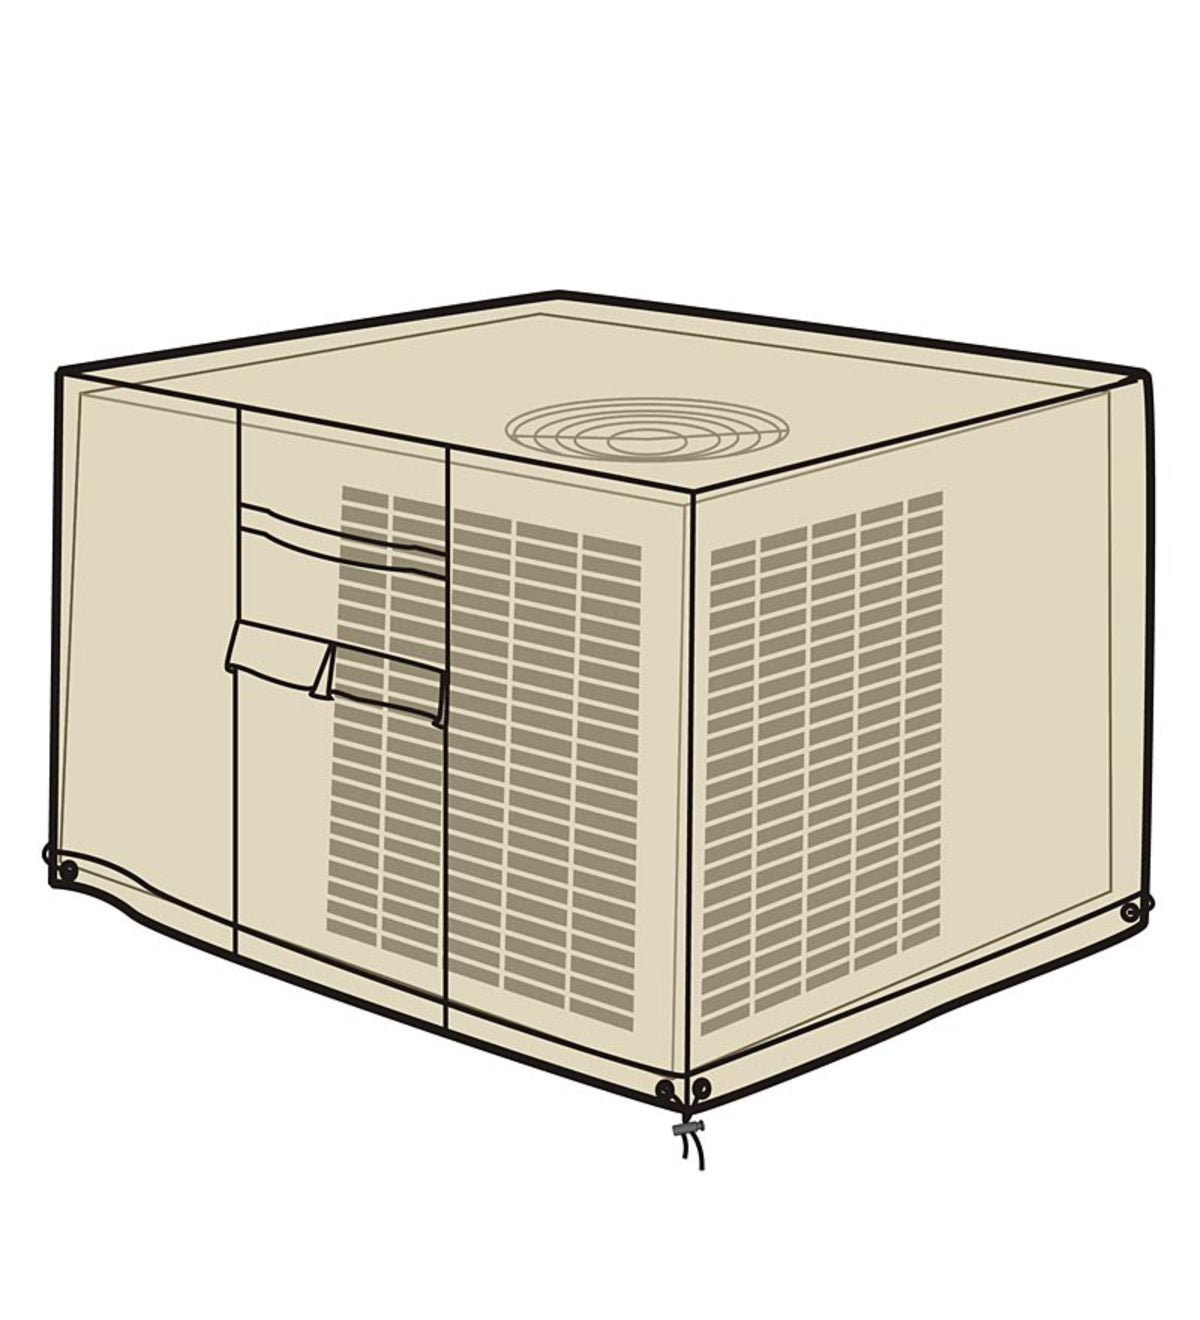 Deluxe Square AC Unit Cover